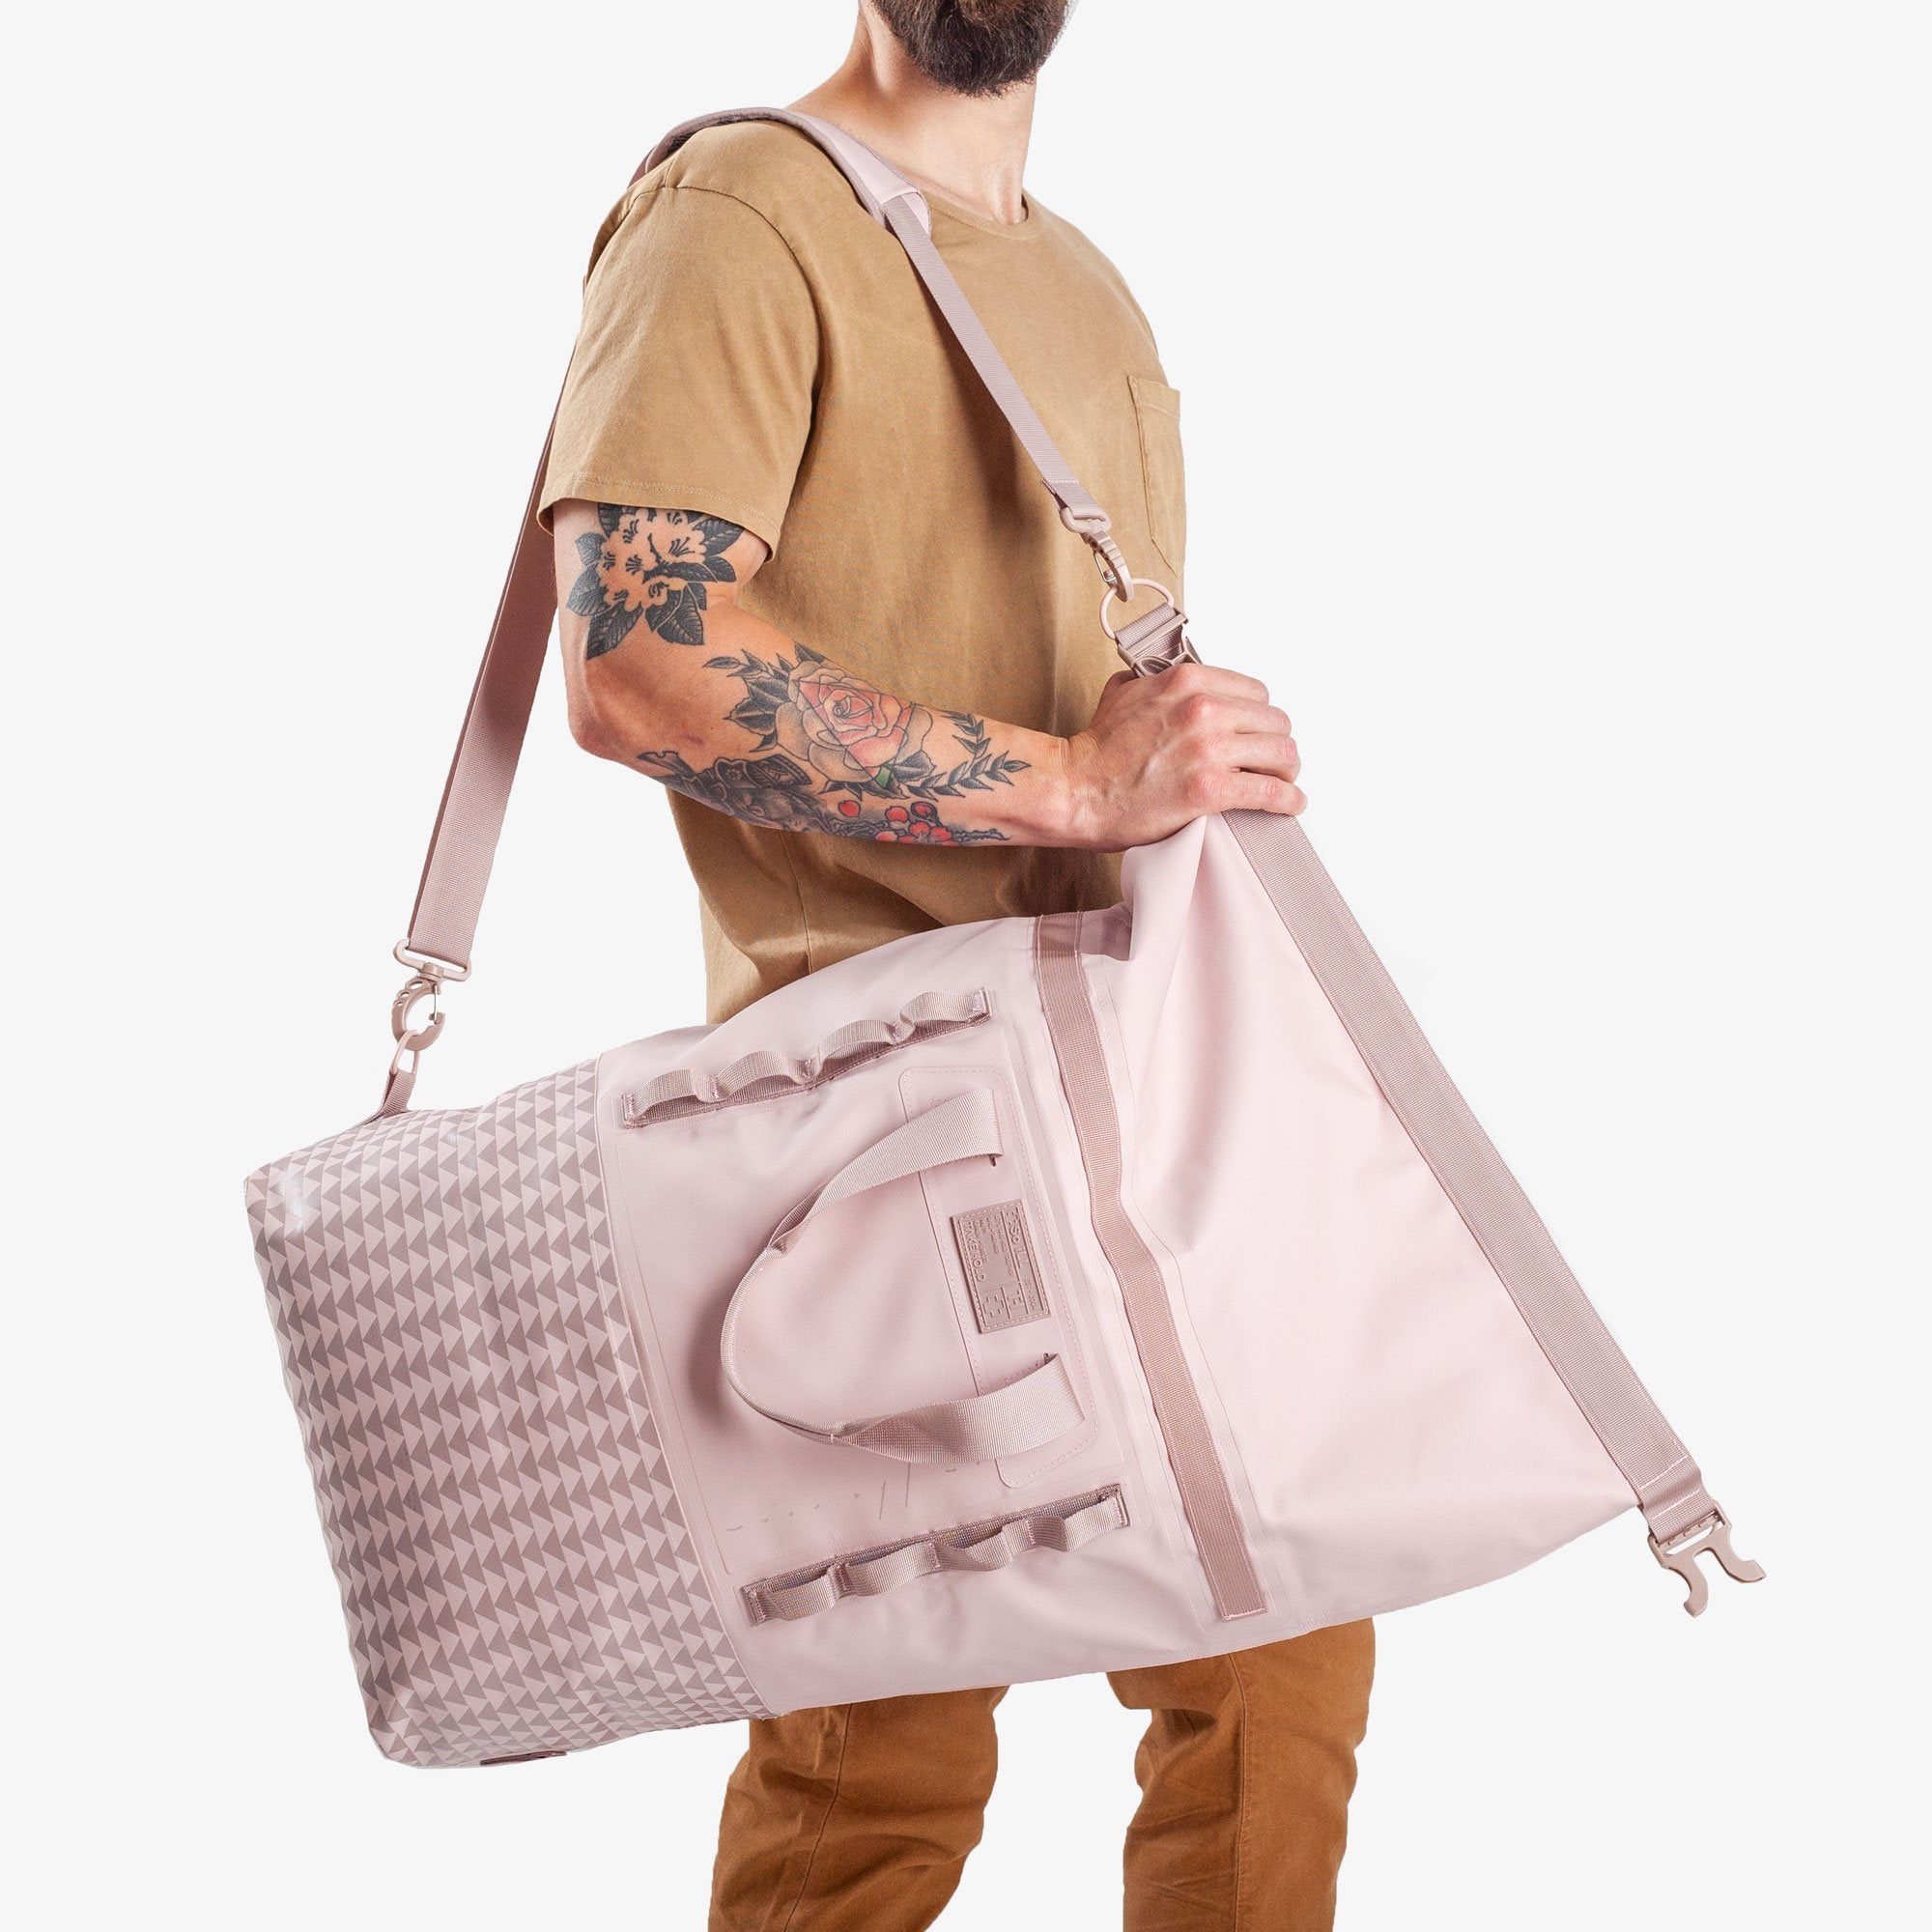 Model carrying So iLL Jason Mamoa Dirt Bag 45L in Pink over the shoulder